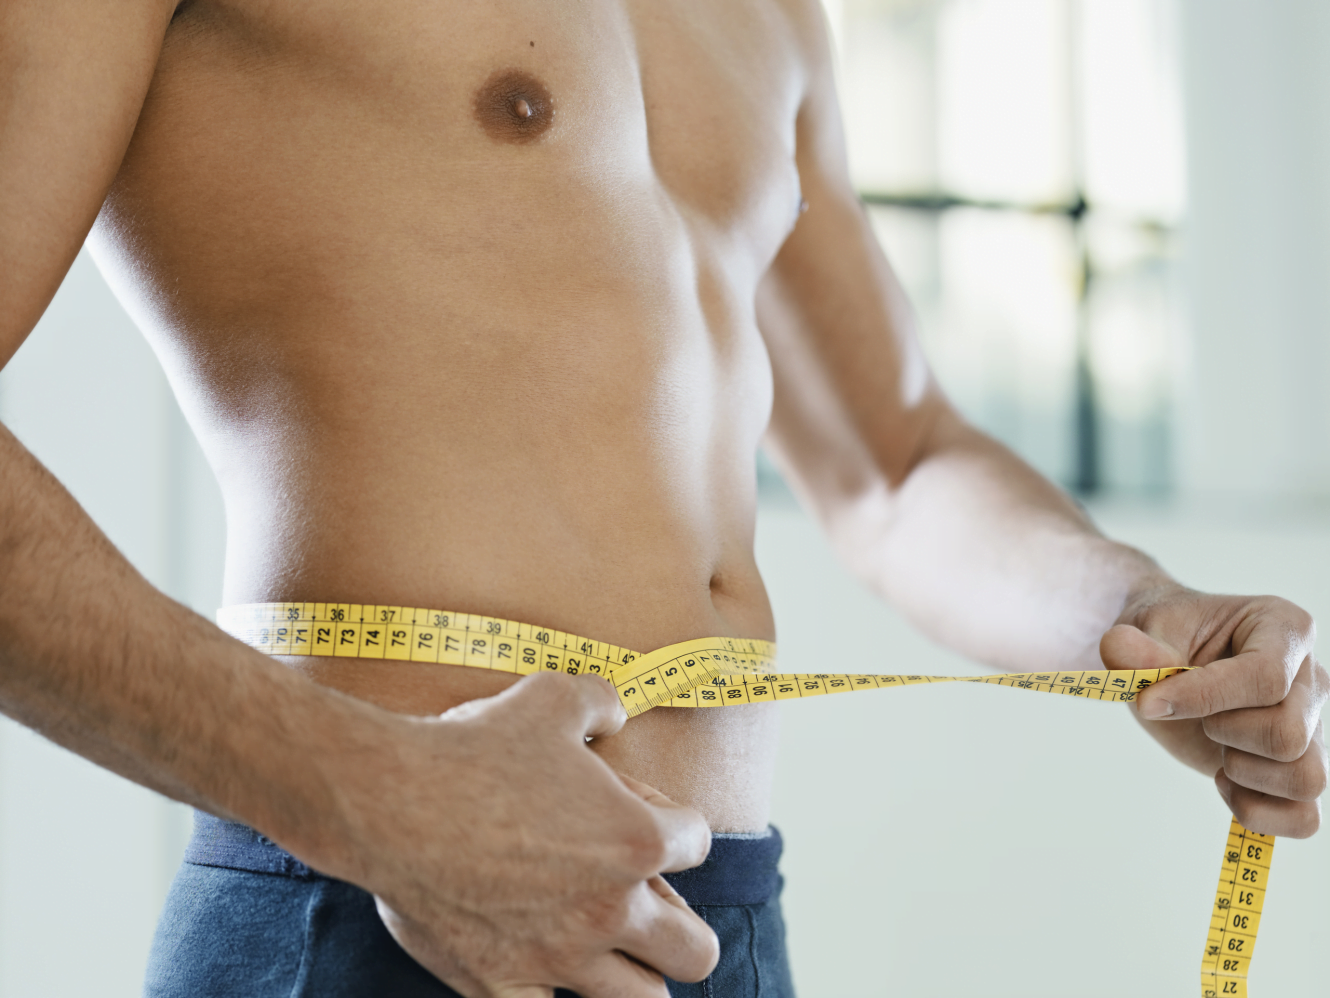 Male body contouring treatment